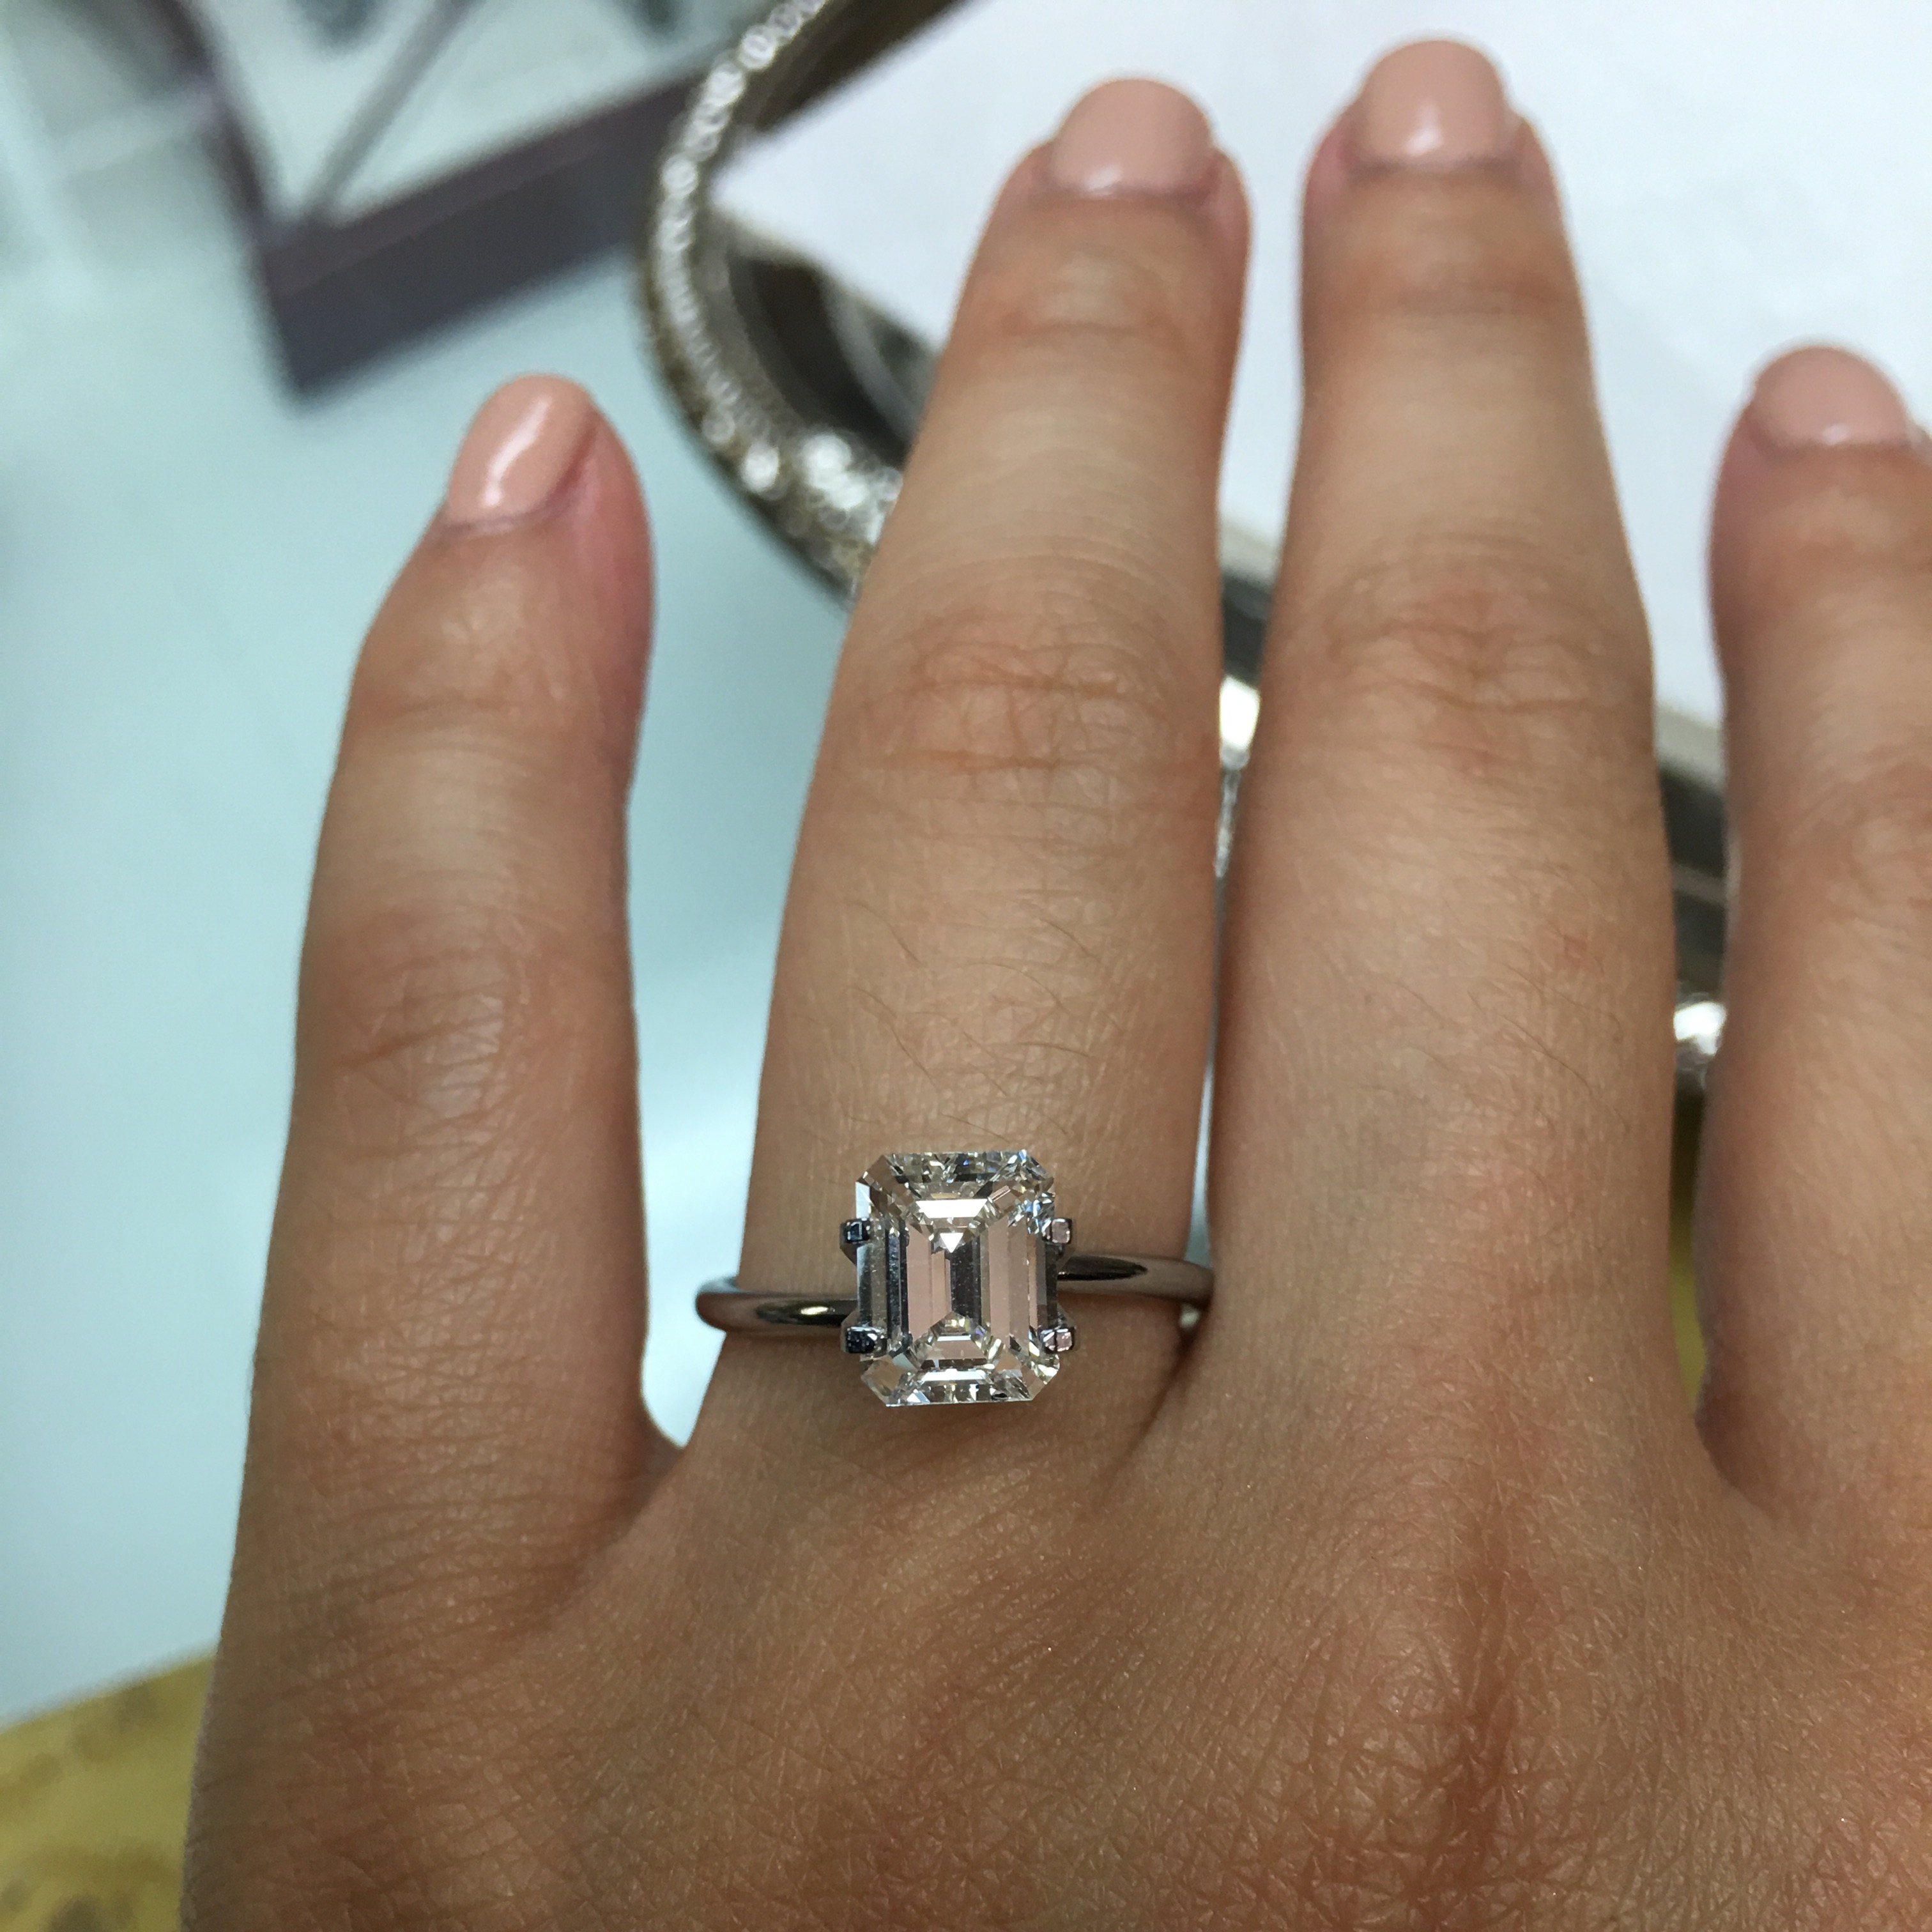 Emerald Cut Diamond Solitaire Intended For Solitaire Emerald Cut Engagement Rings (View 4 of 25)